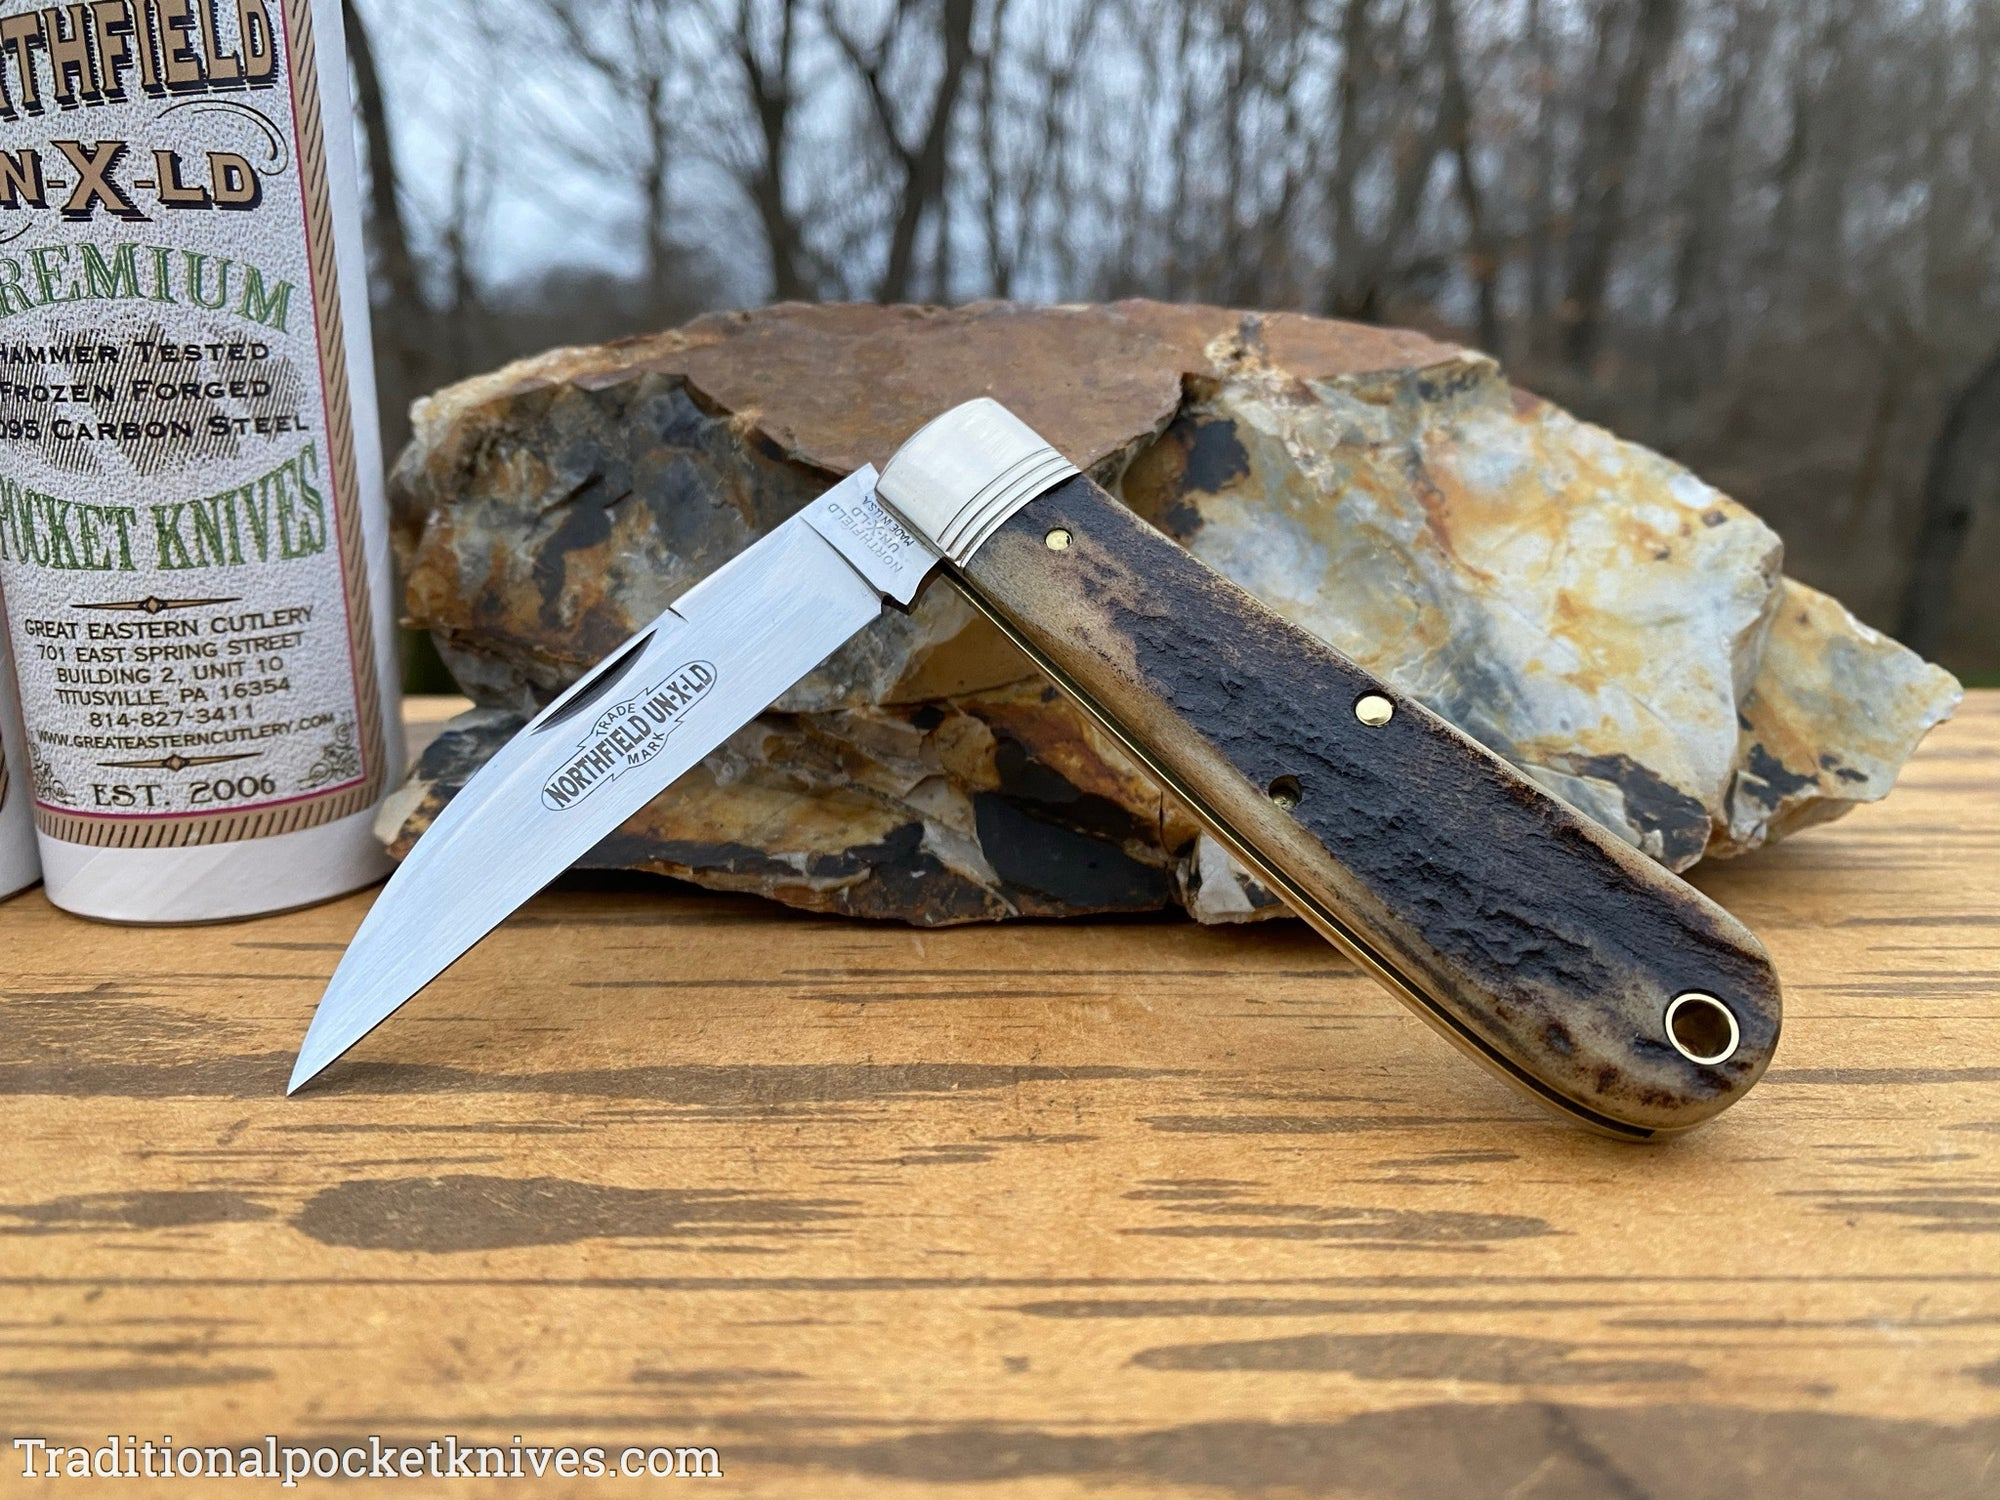 Great Eastern Cutlery #470120 Northfield UN-X-LD Viper Sambar Stag #9